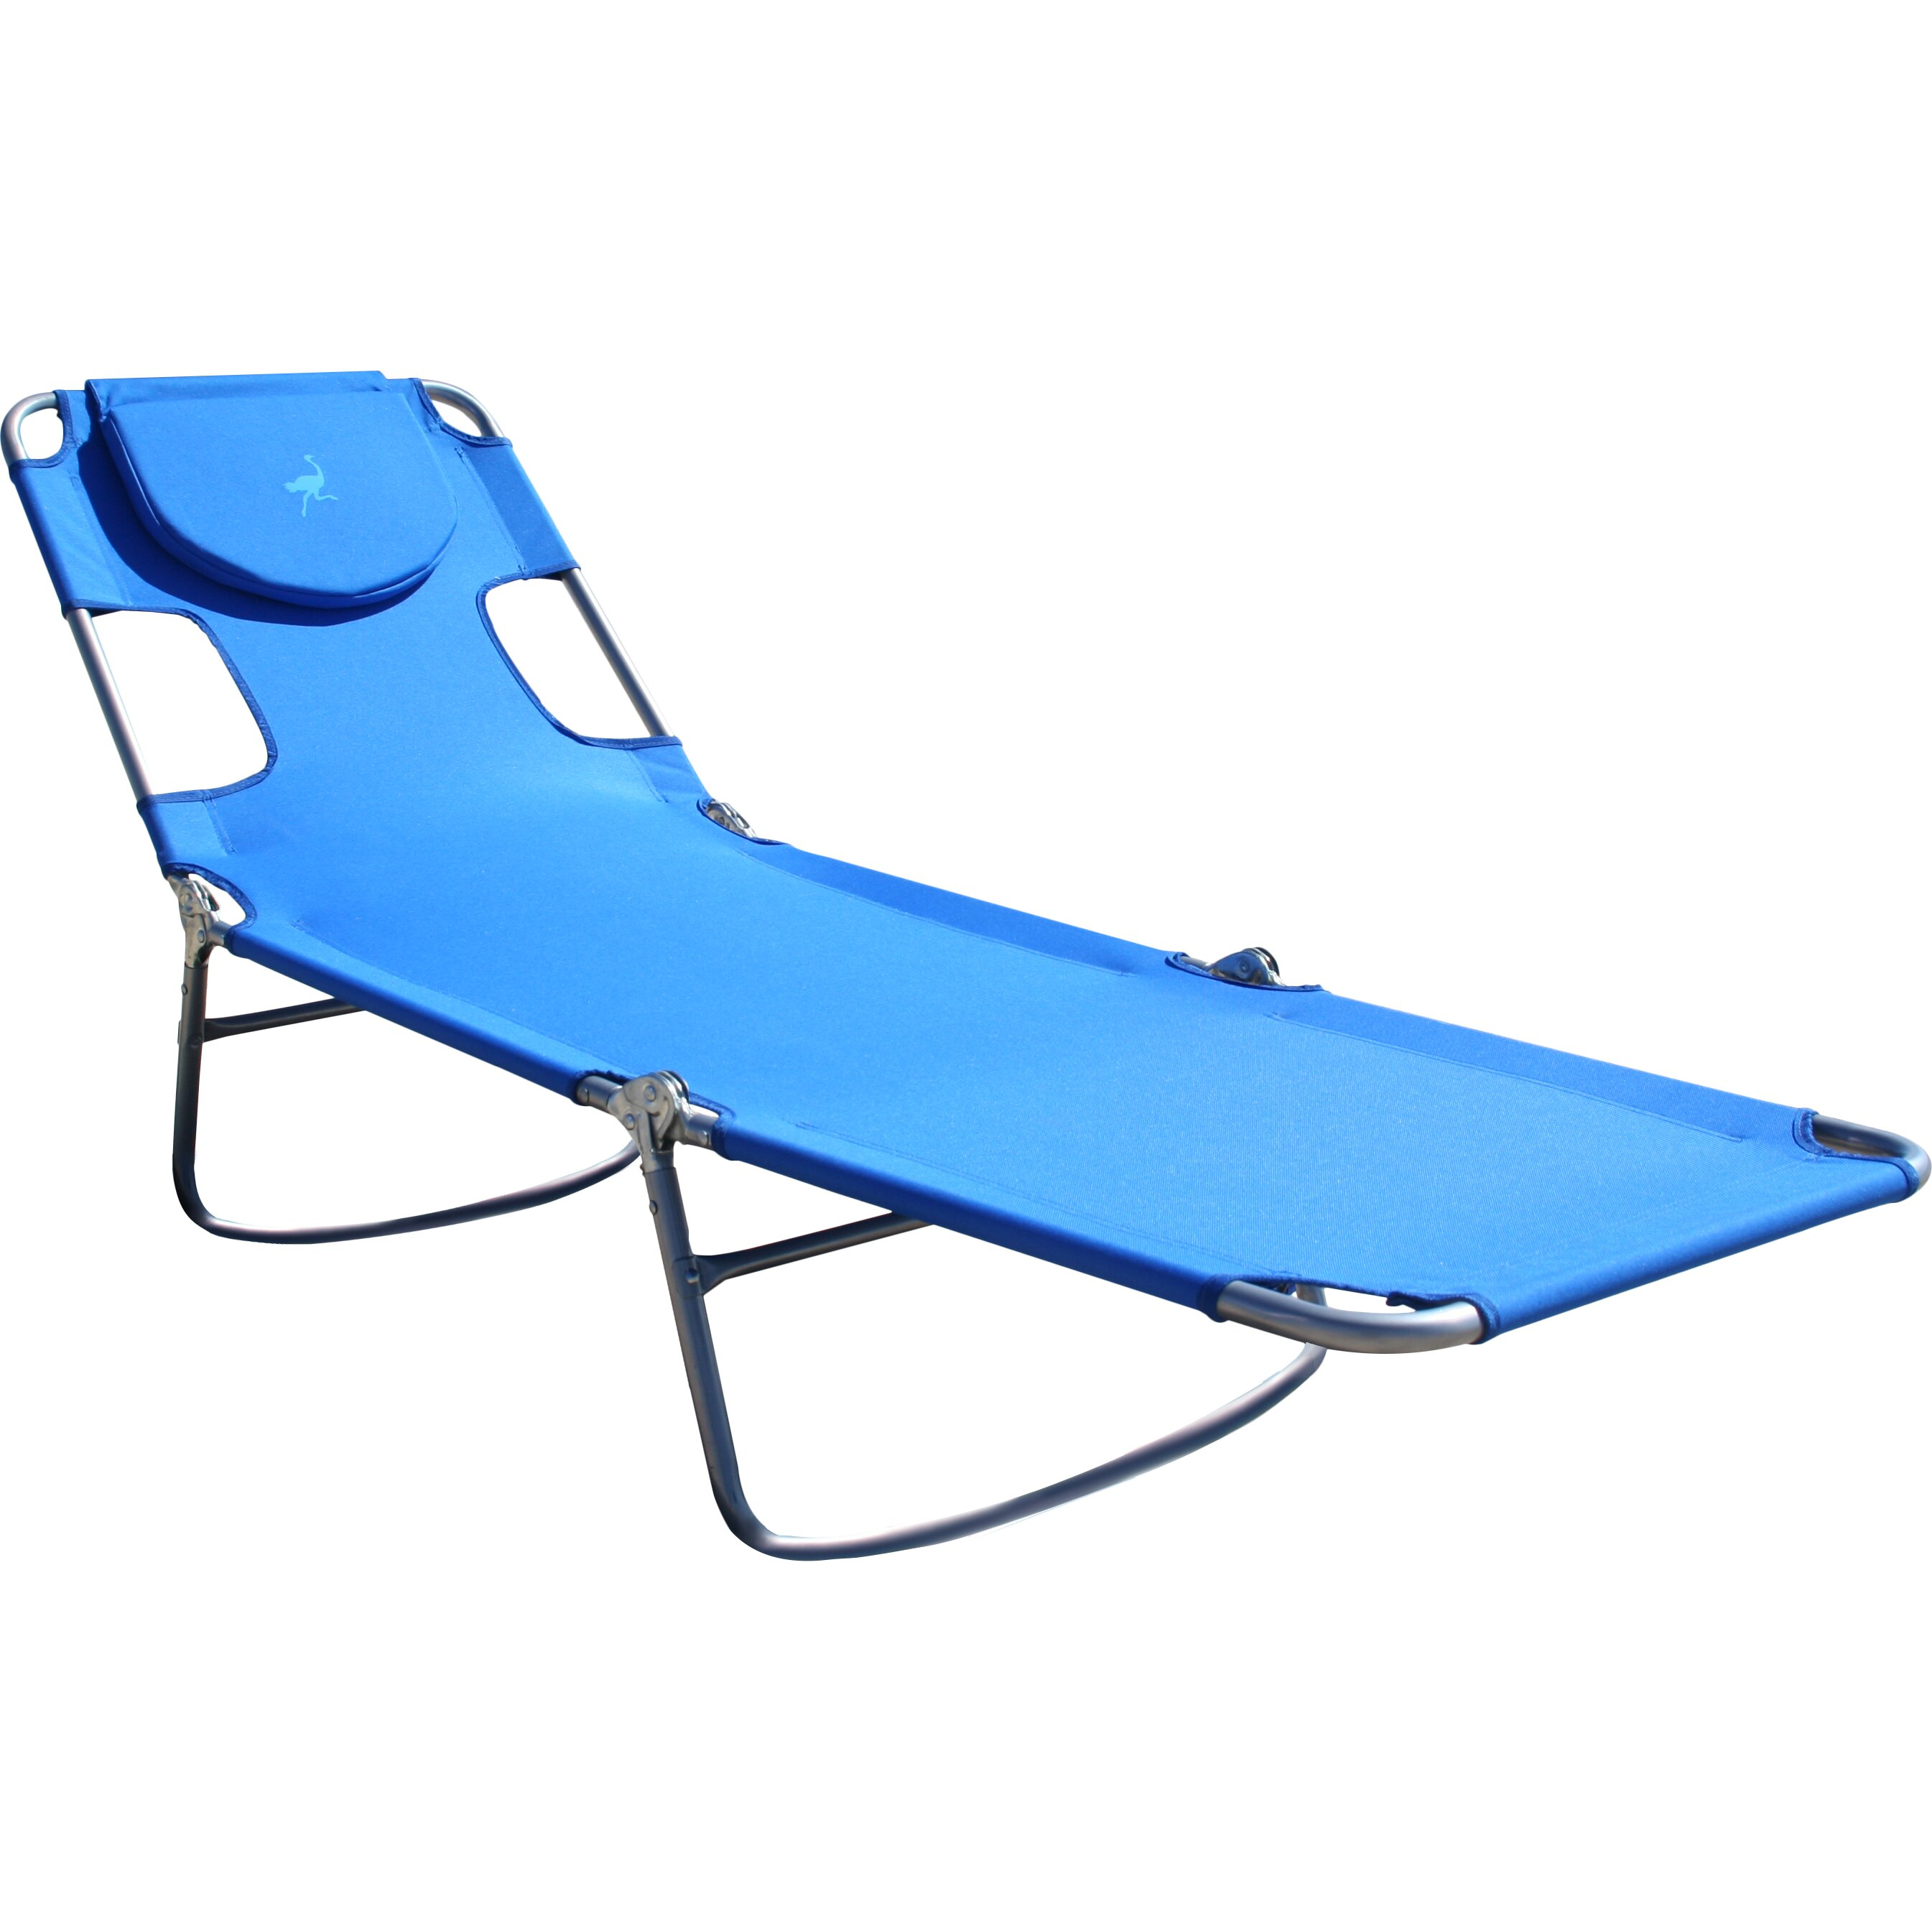 Ostrich chair folding chaise lounge reviews - Folding outdoor chaise lounge ...